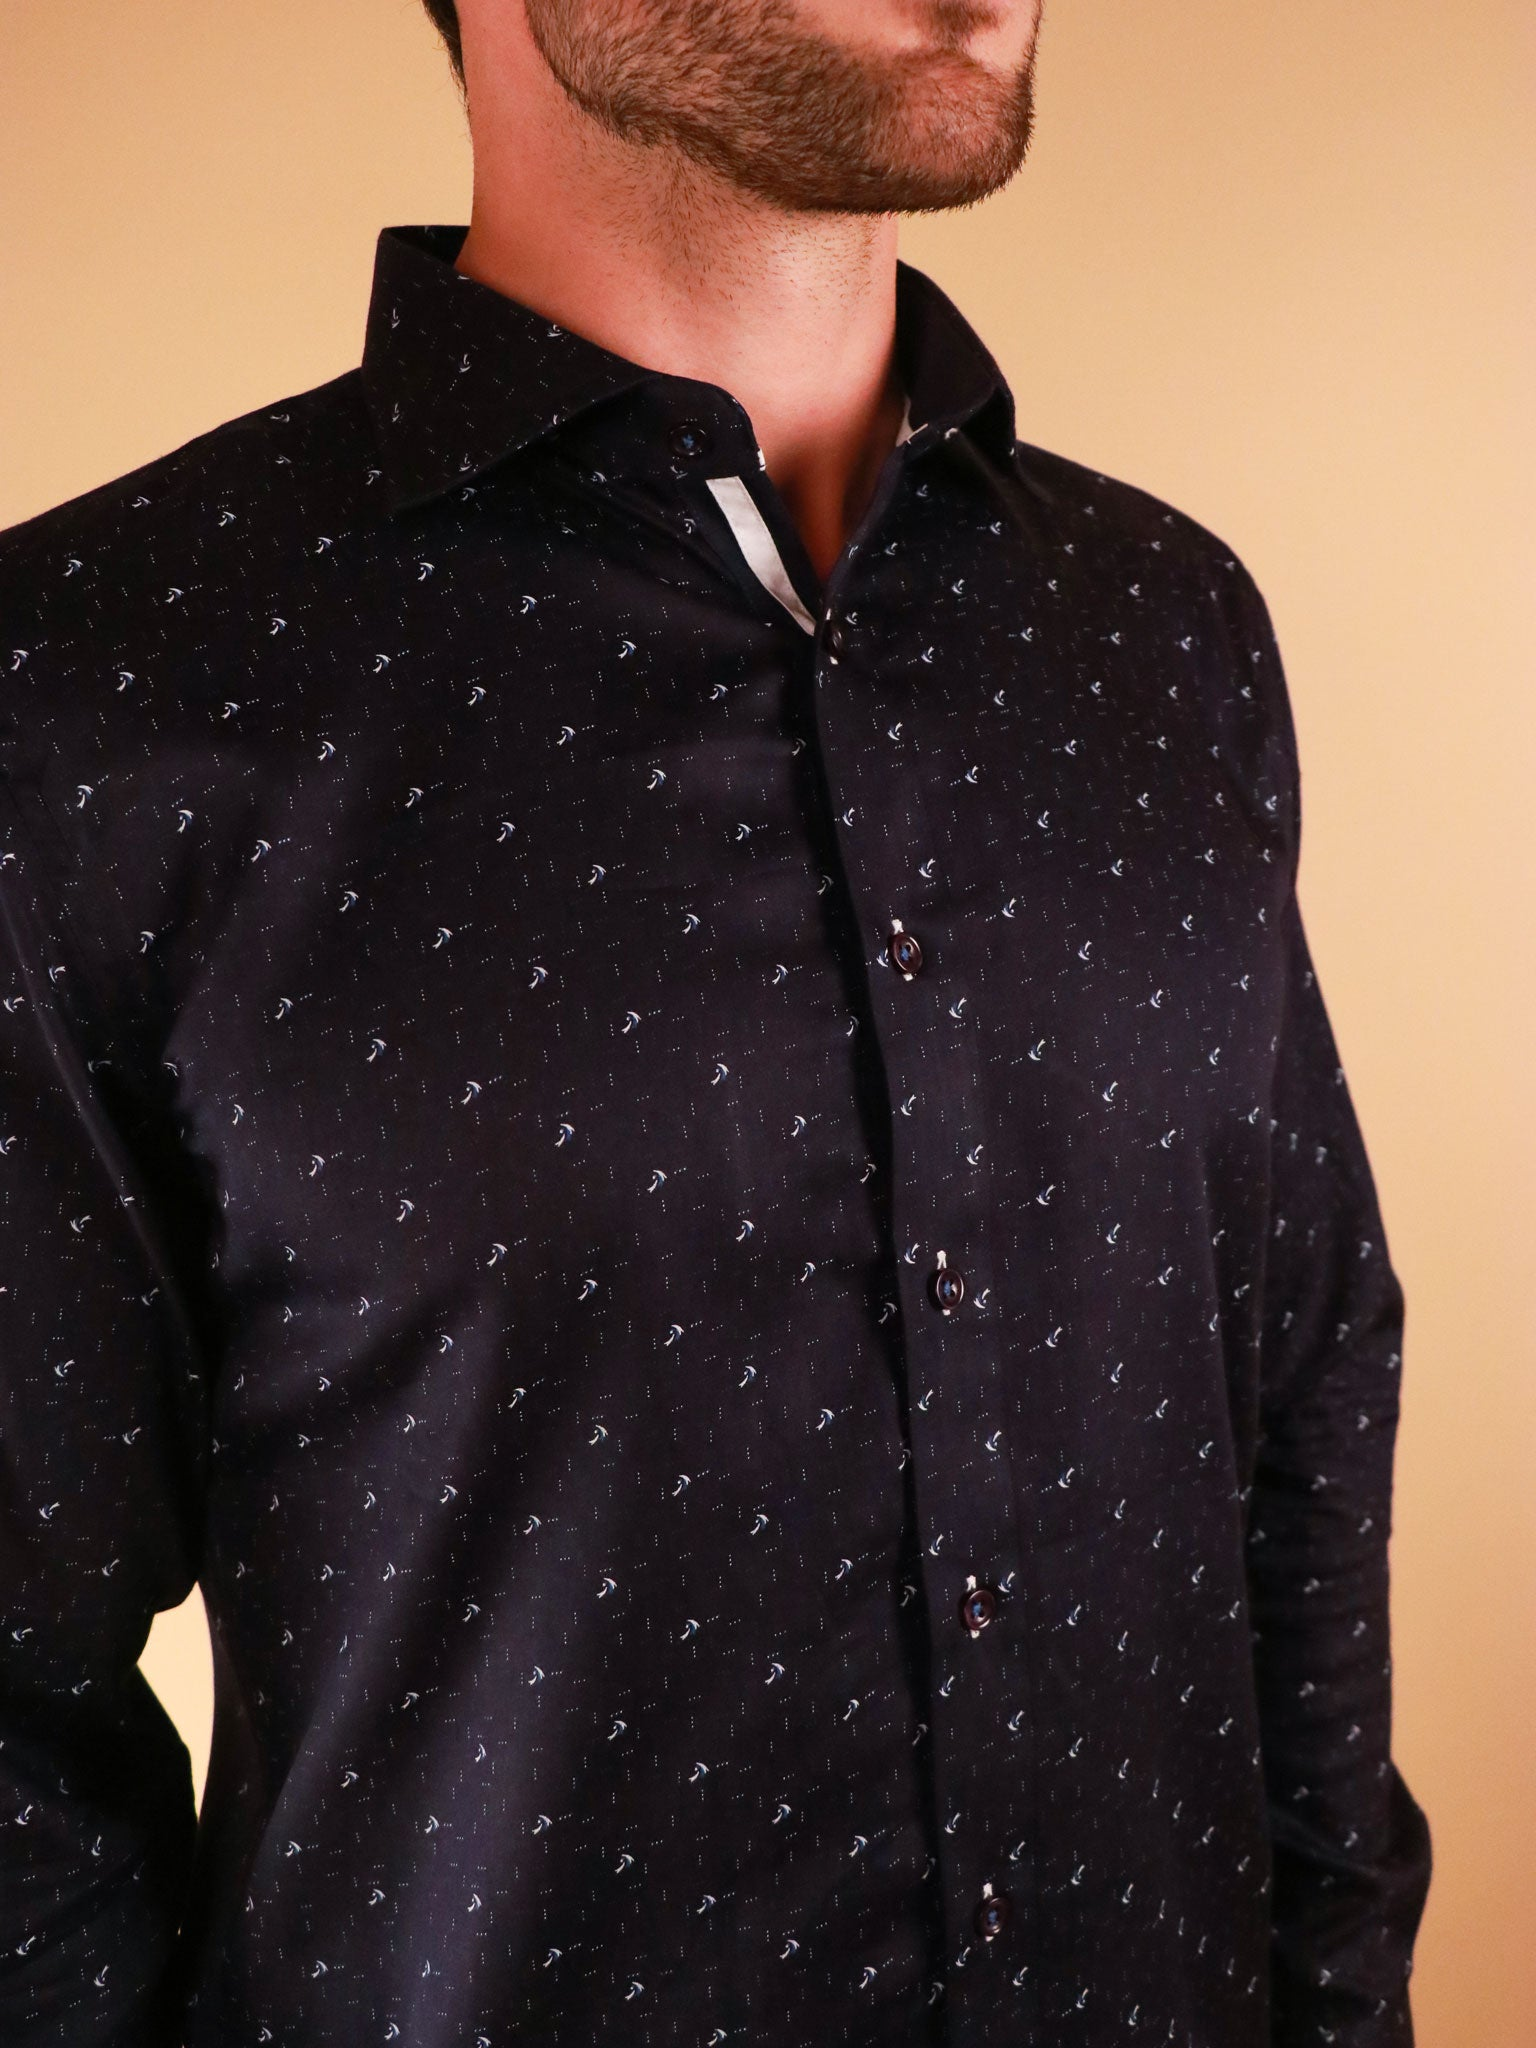 dark crossway shirt model image collar close up